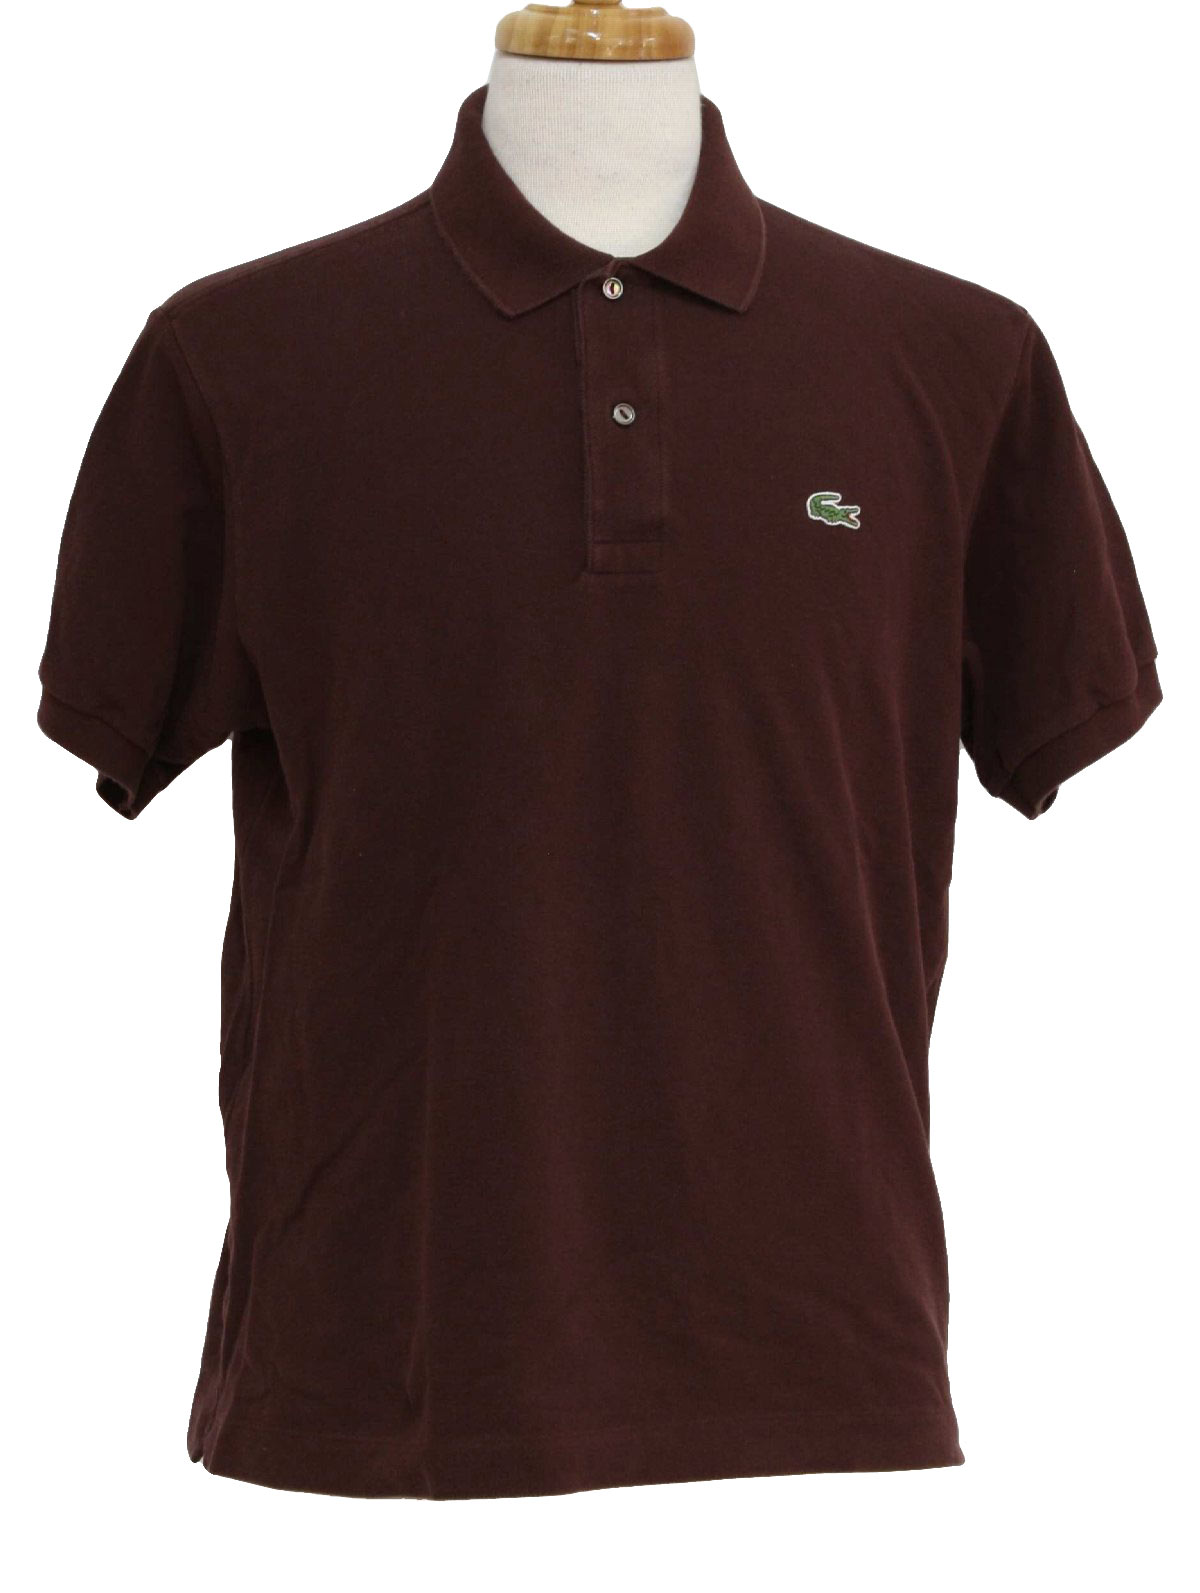 Mens chocolate brown polo shirts for Mens chocolate brown shirt